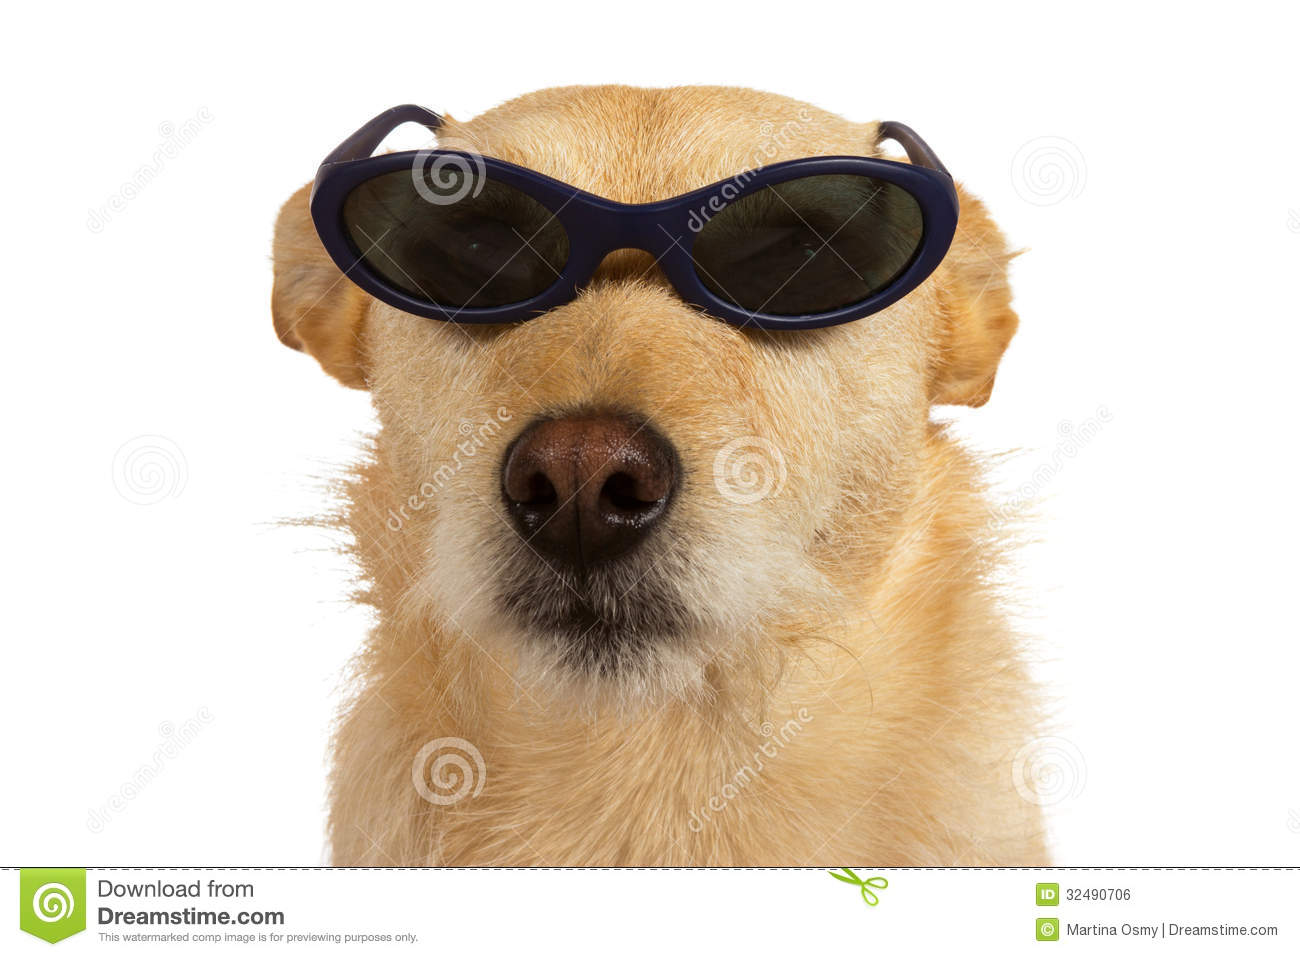 Cool dogs with sunglasses - photo#16